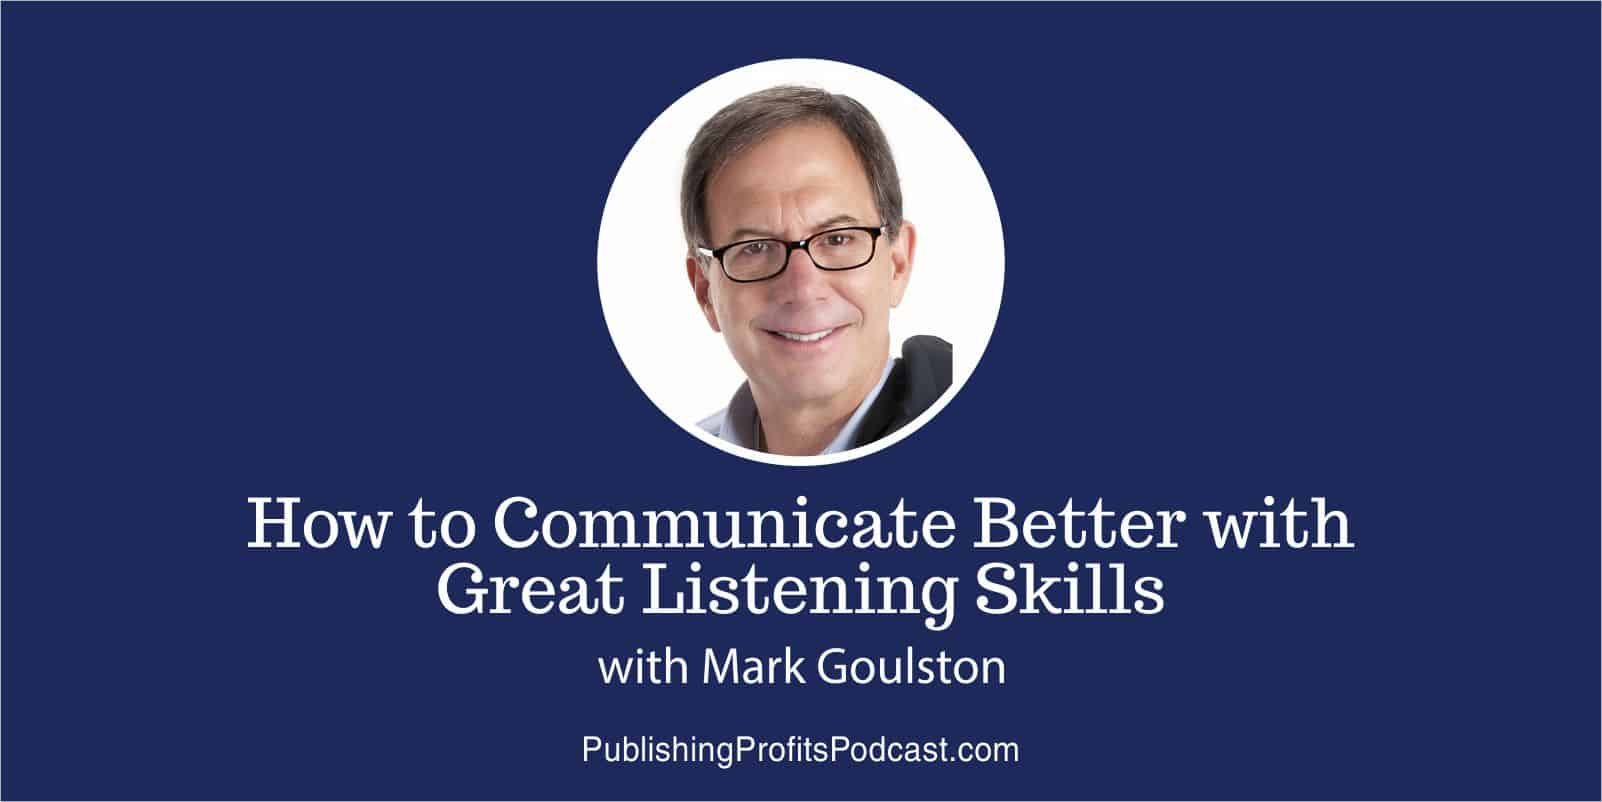 How to Communicate Better Mark Goulston